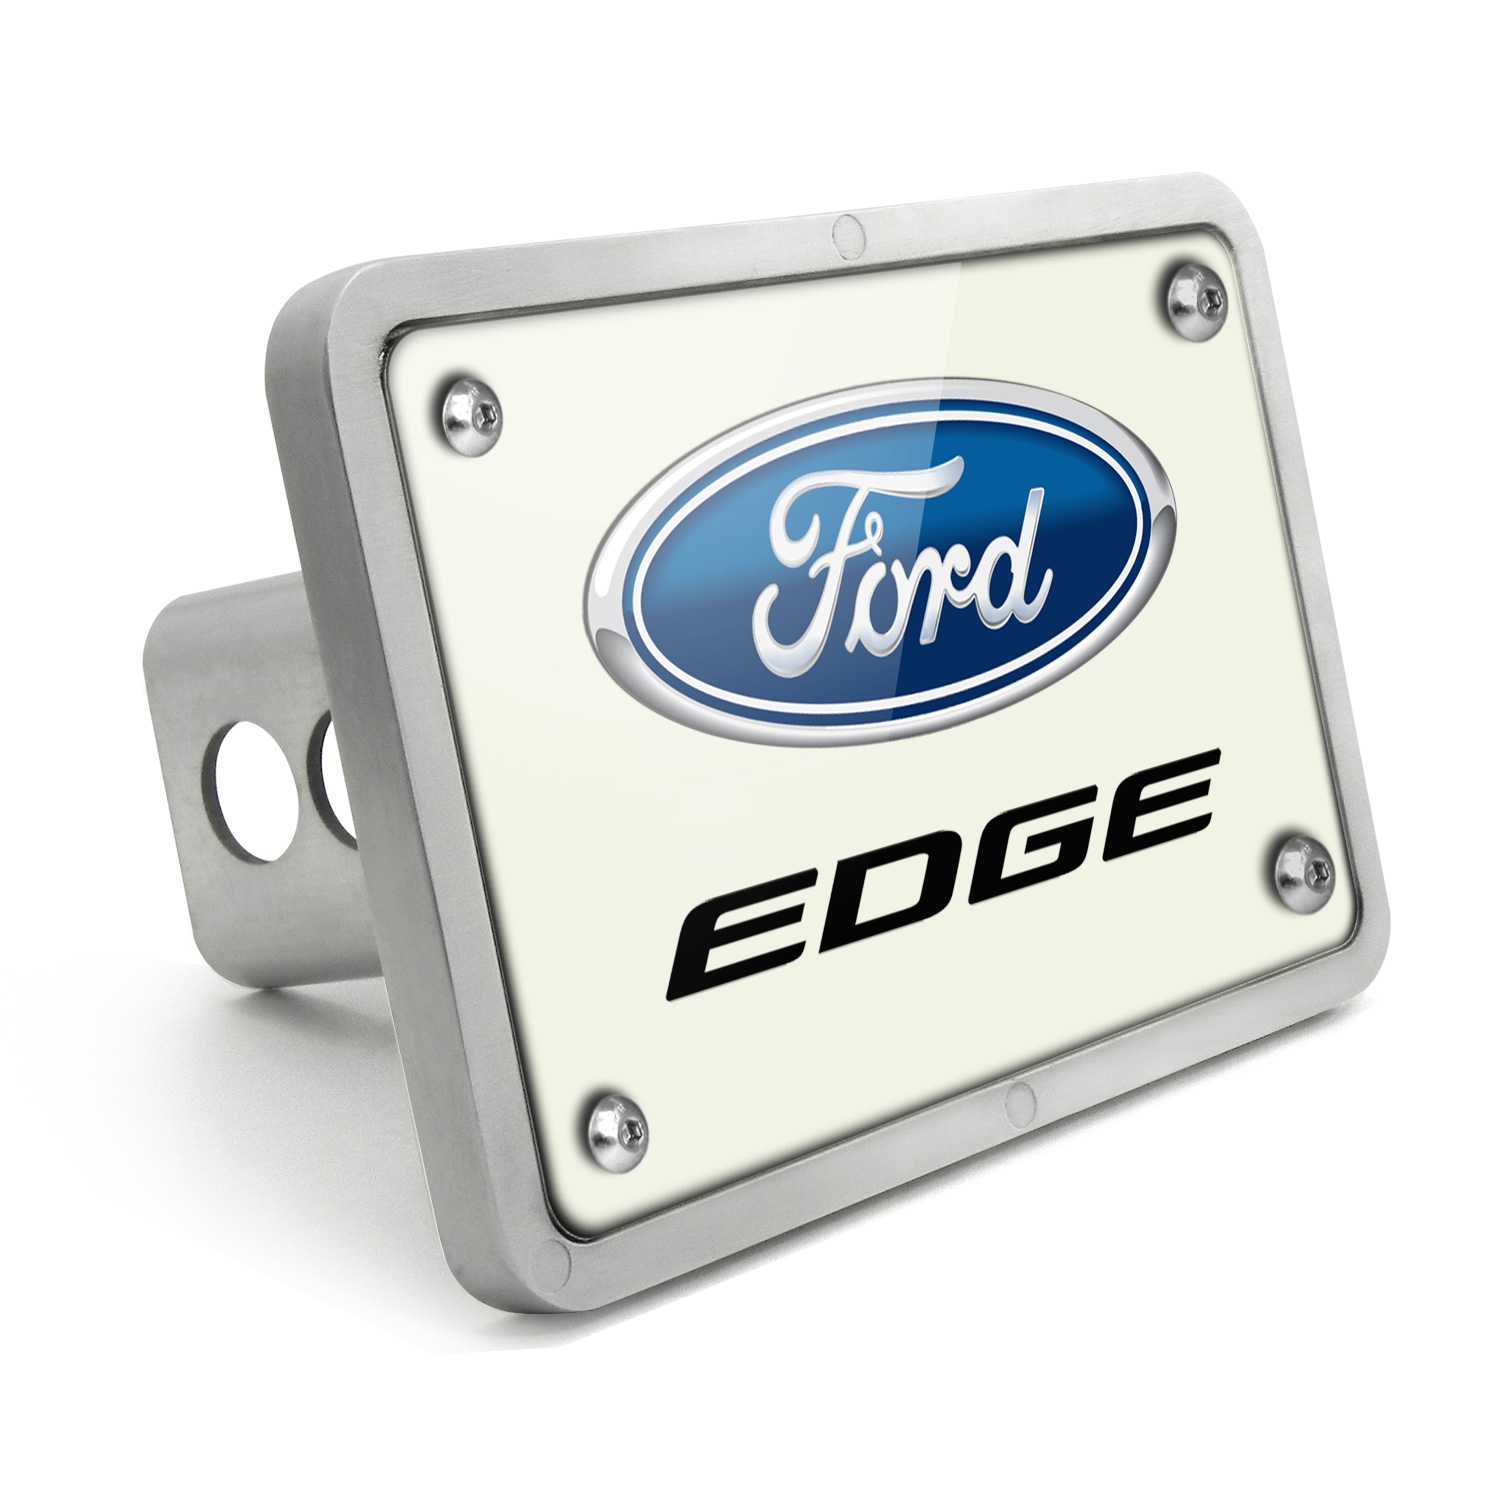 Ford Edge Uv Graphic White Plate Billet Aluminum  Inch Tow Hitch Cover